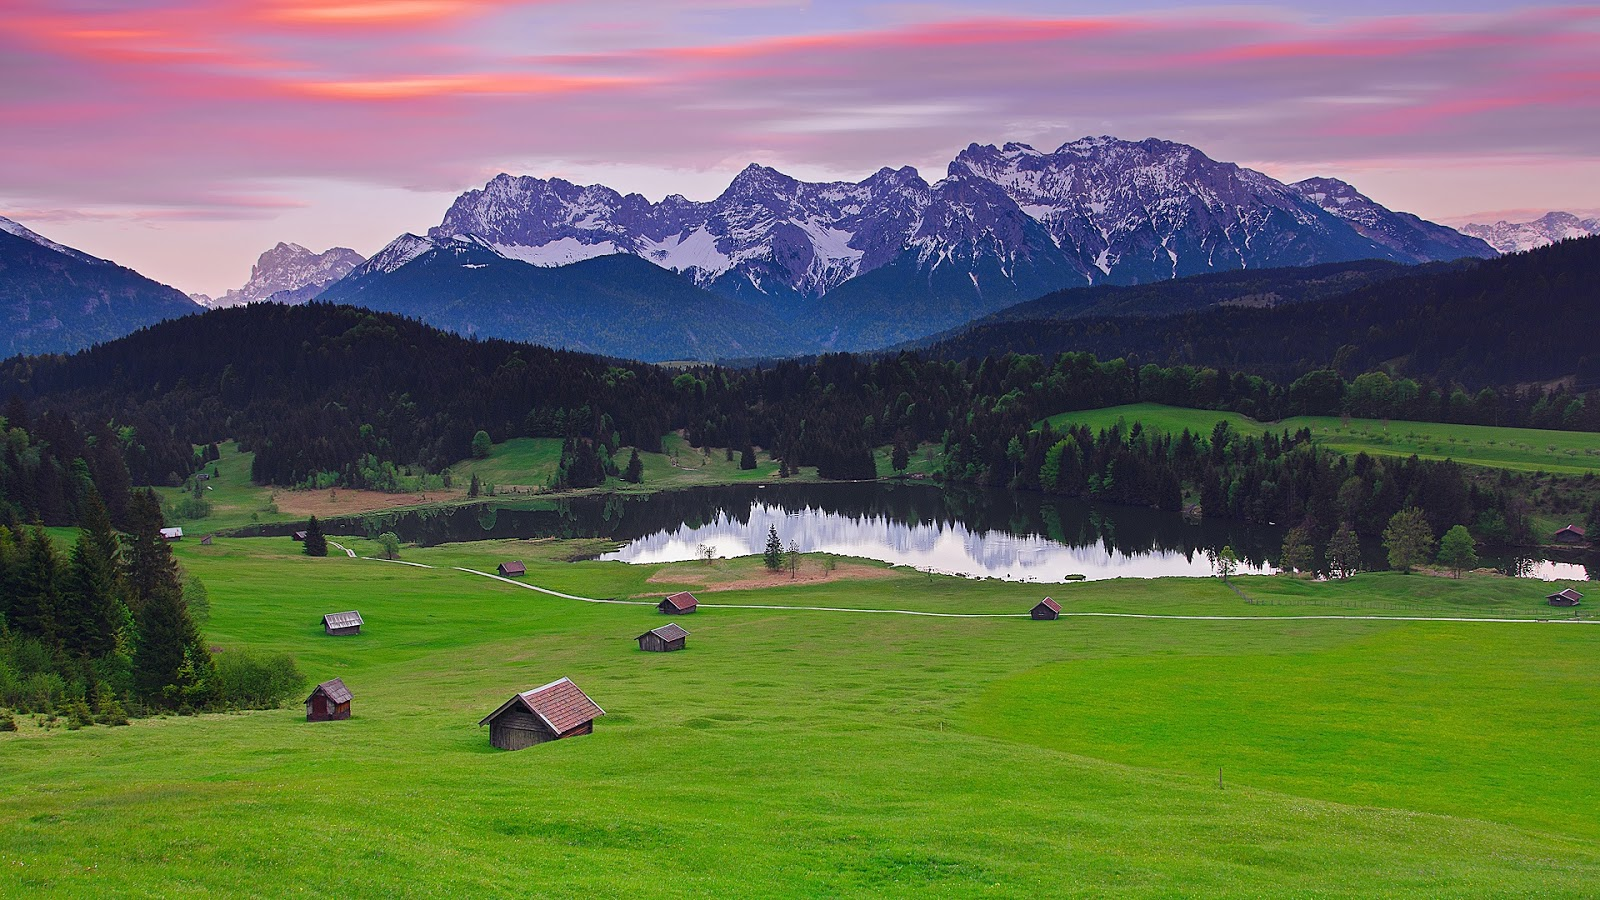 HD WALLPAPERS   DESKTOP WALLPAPERS Landscape Apls in Germany 1600x900